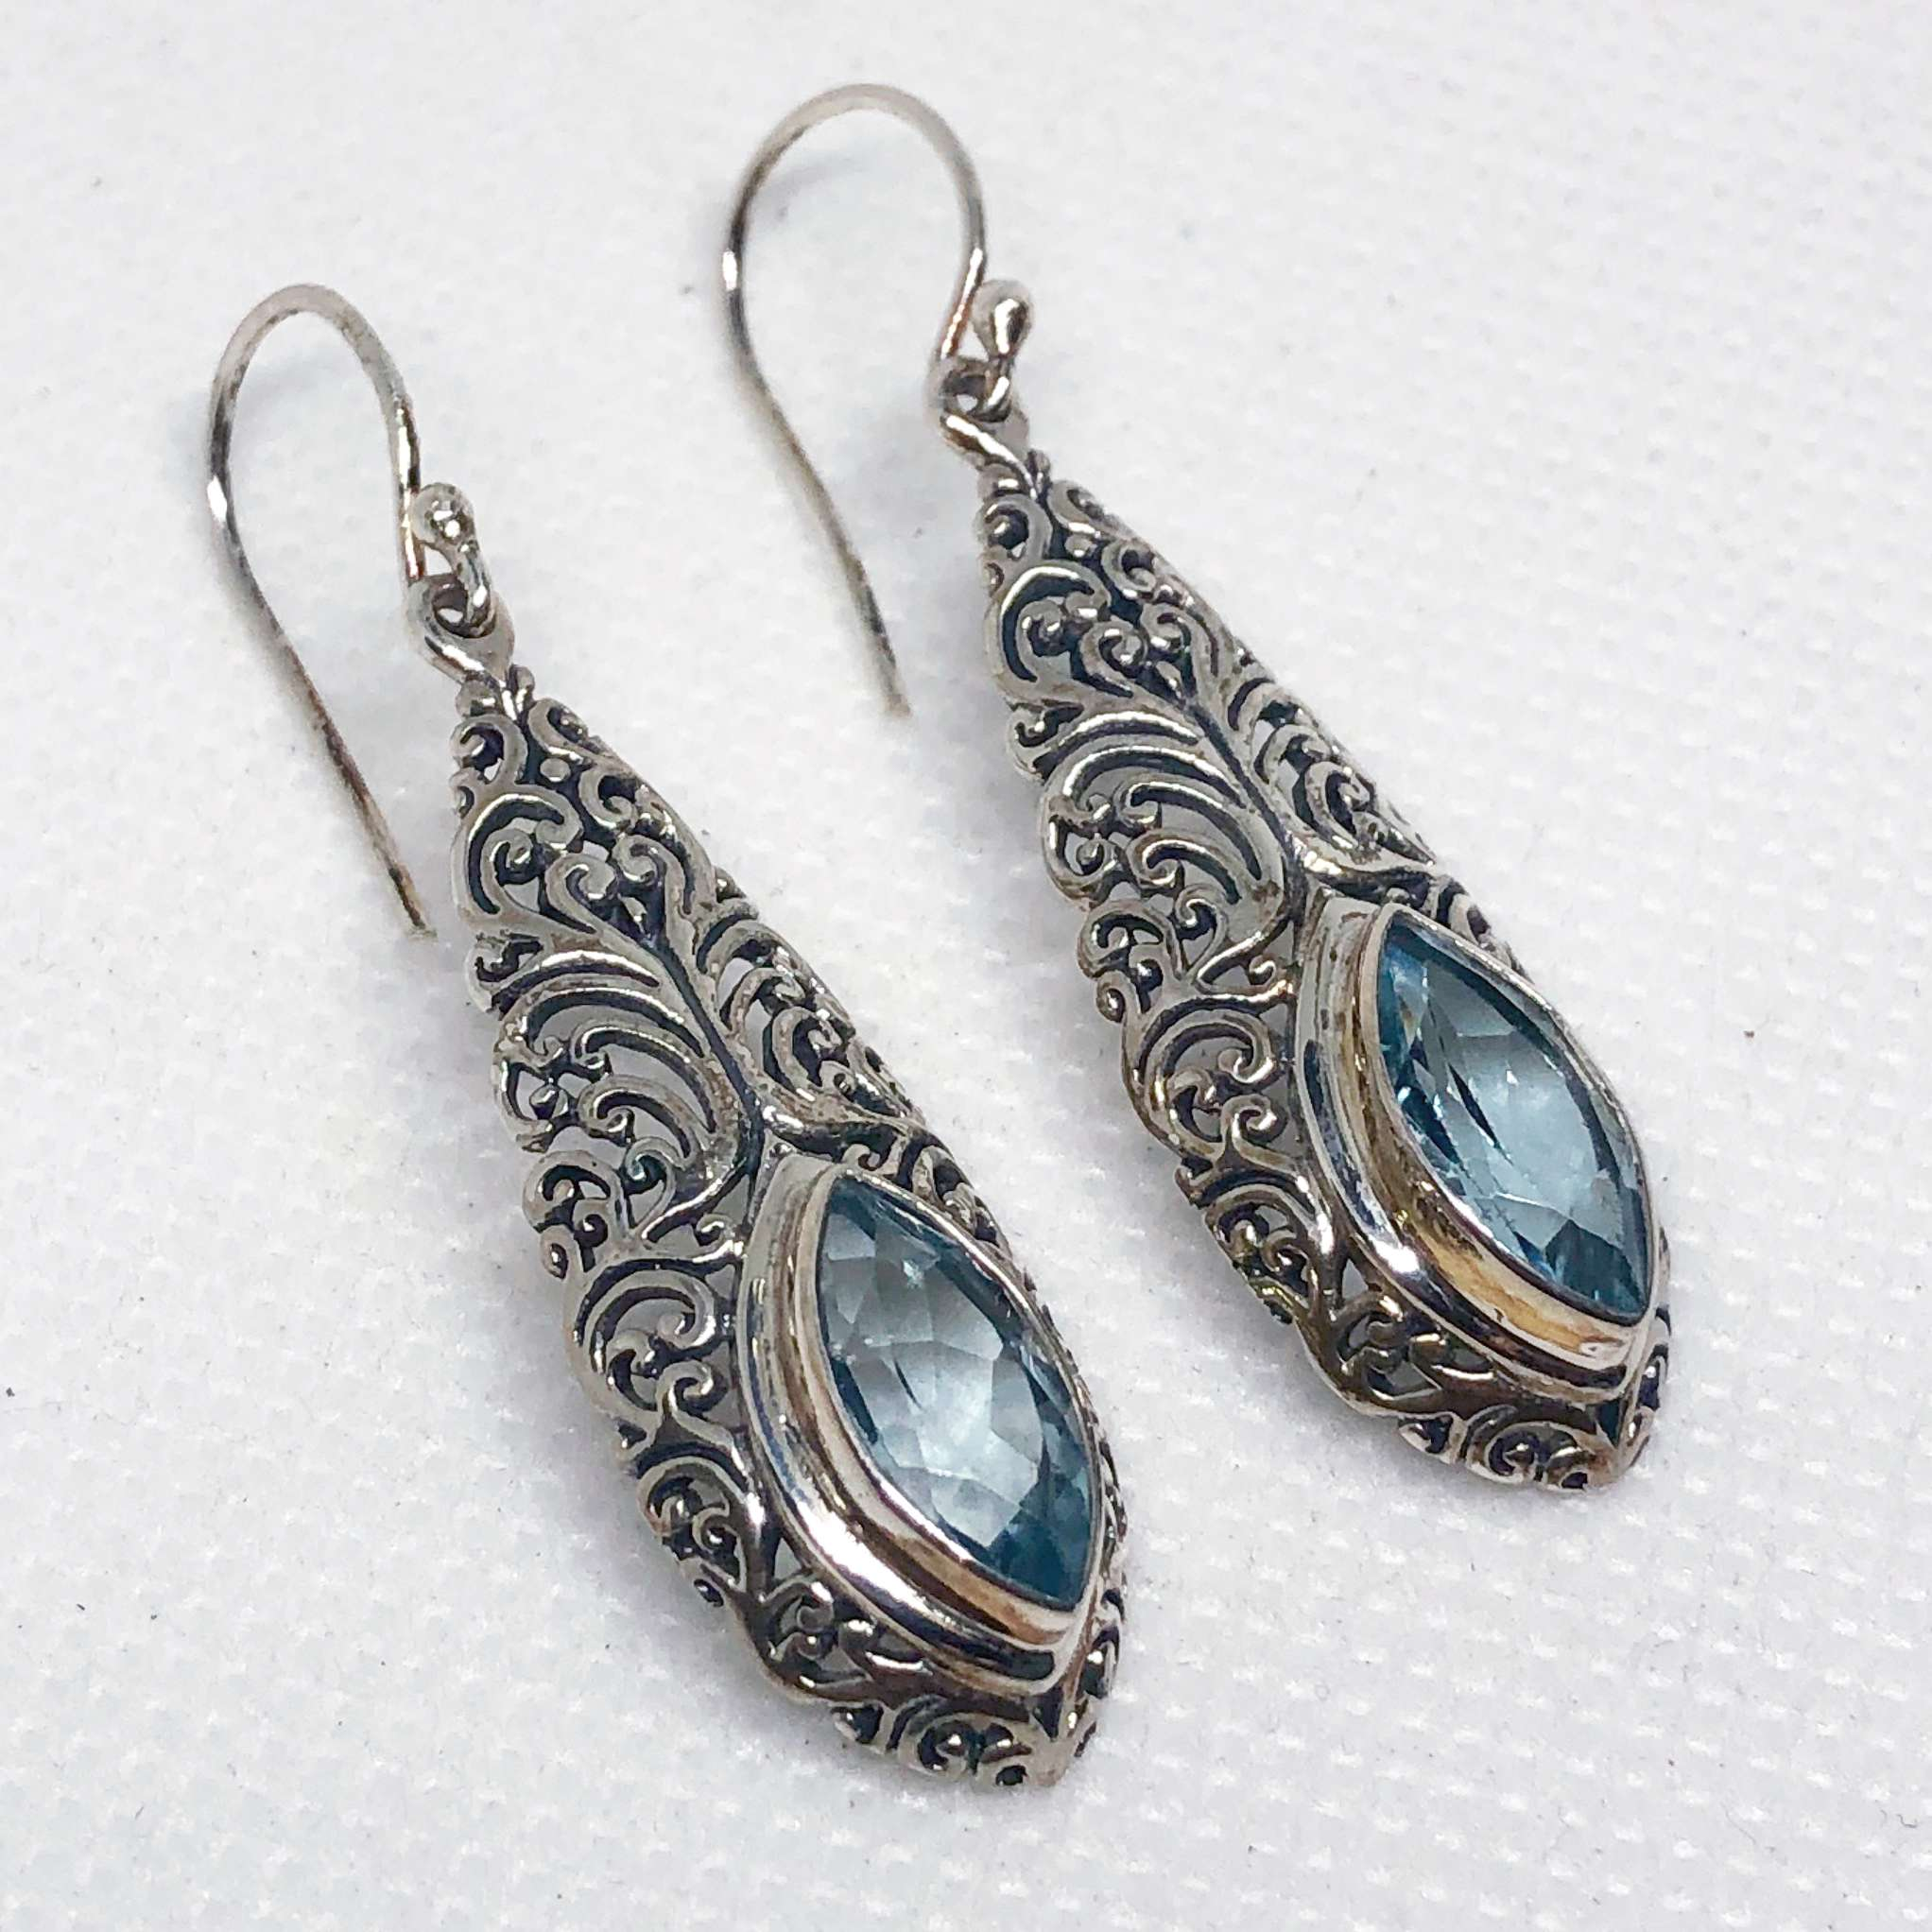 (UNIQUE 925 BALI SILVER FILIGREE EARRINGS WITH TOPAZ)